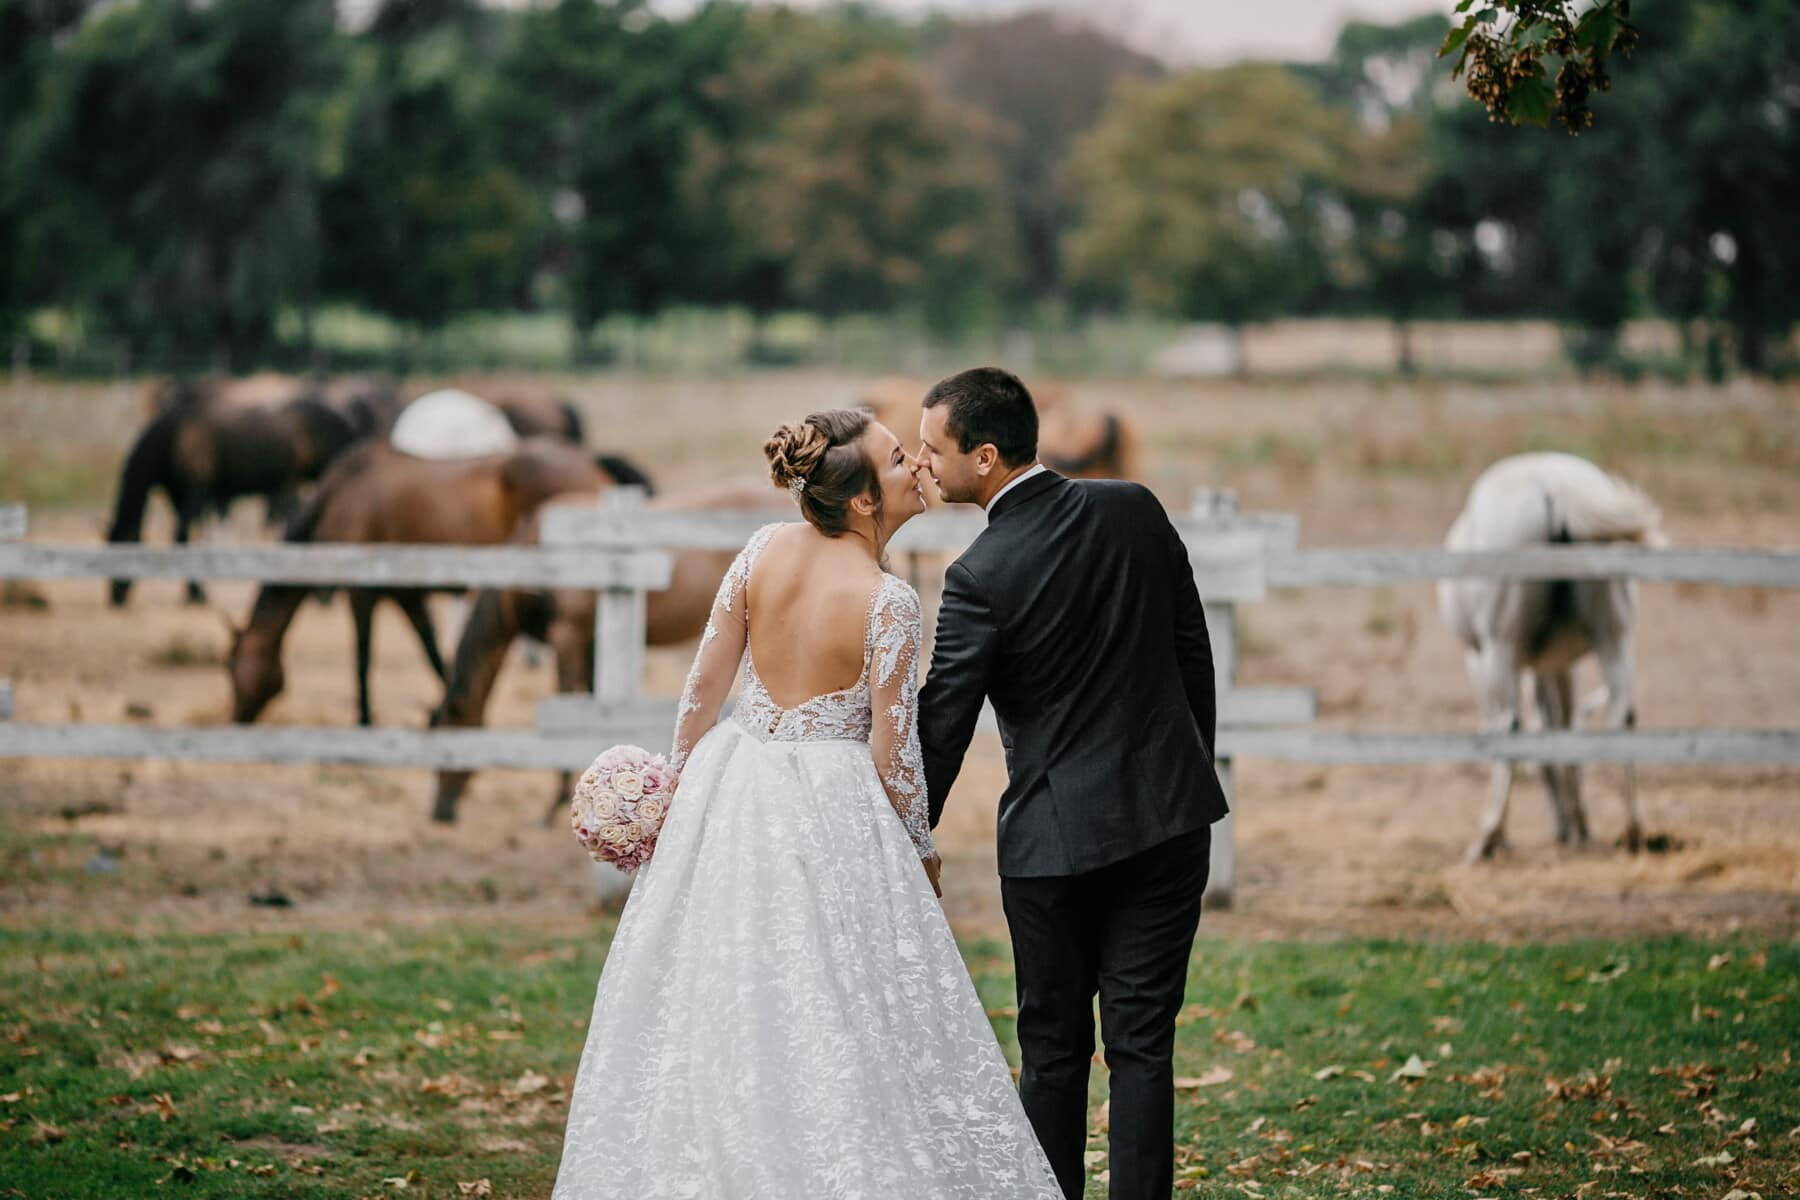 bride, just married, groom, countryside, village, horses, married, wedding, dress, couple